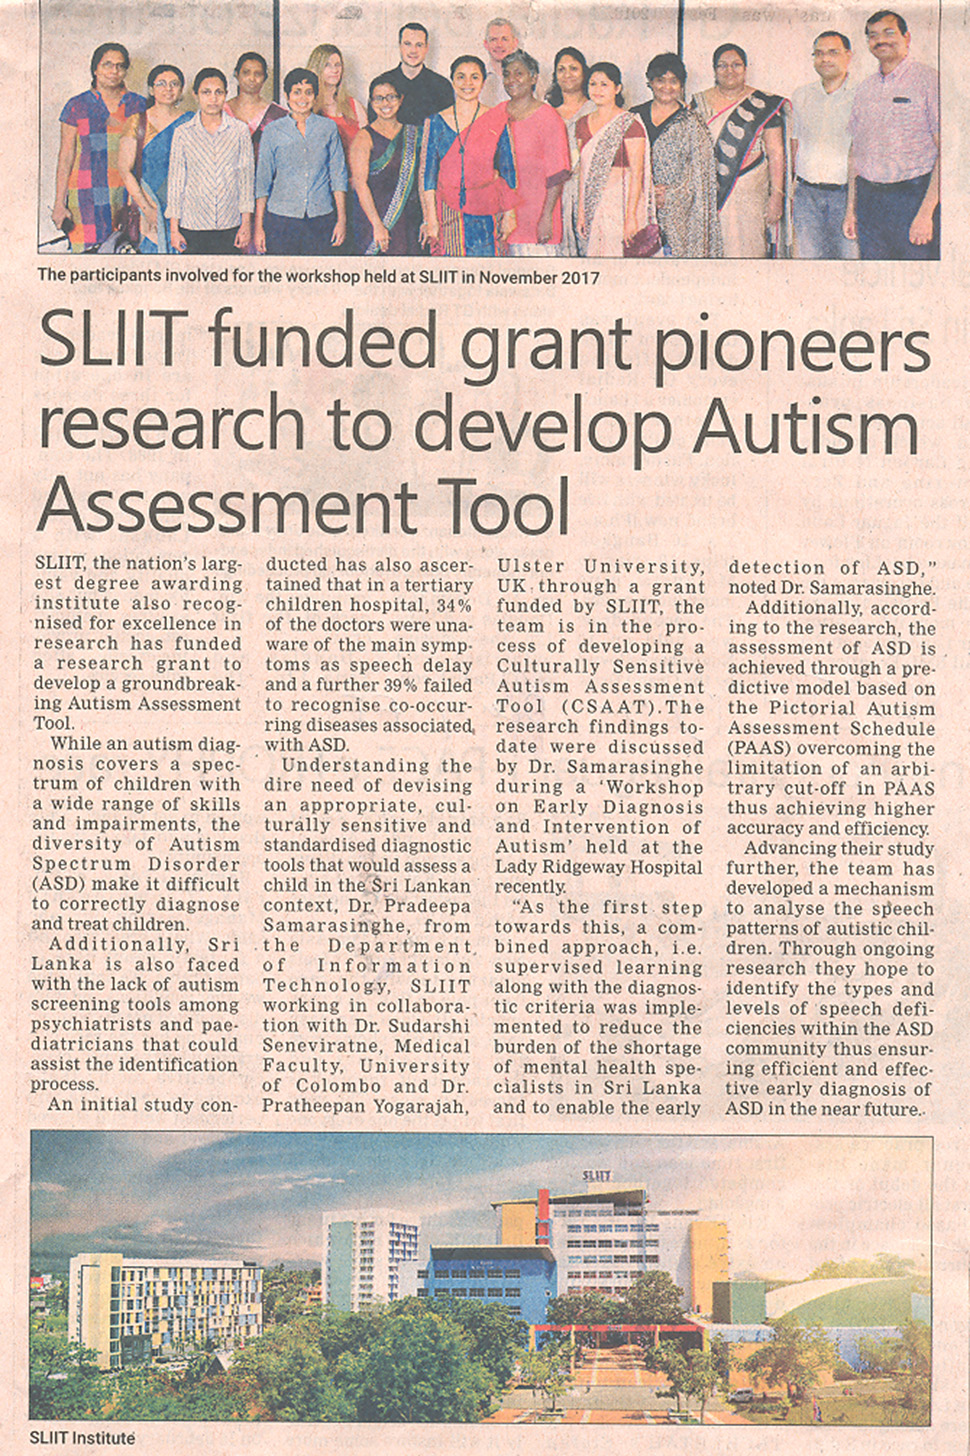 SLIIT-Funded-Grant-Pioneers-Research-to-Develop-Autism-Assessment-Tool-Daily-FT-24-12-2018